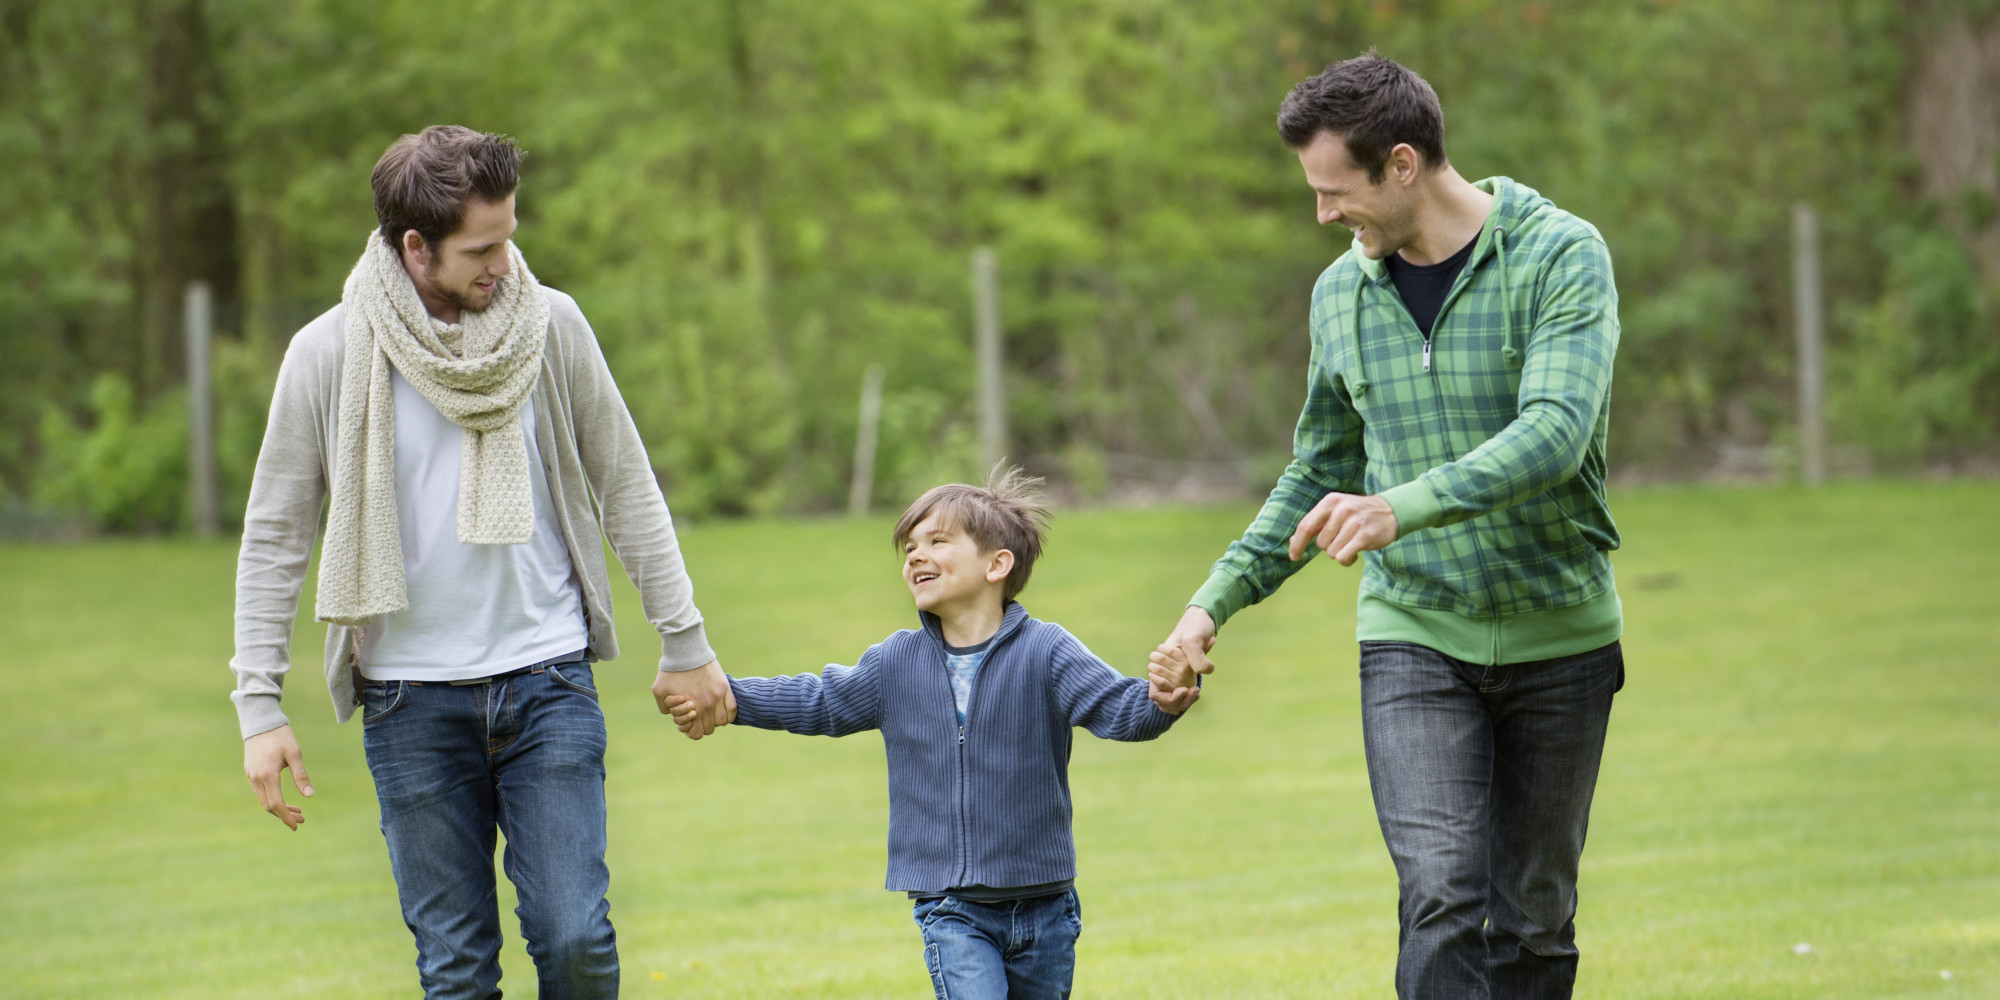 The Value Of Diversity In A Family The University Times